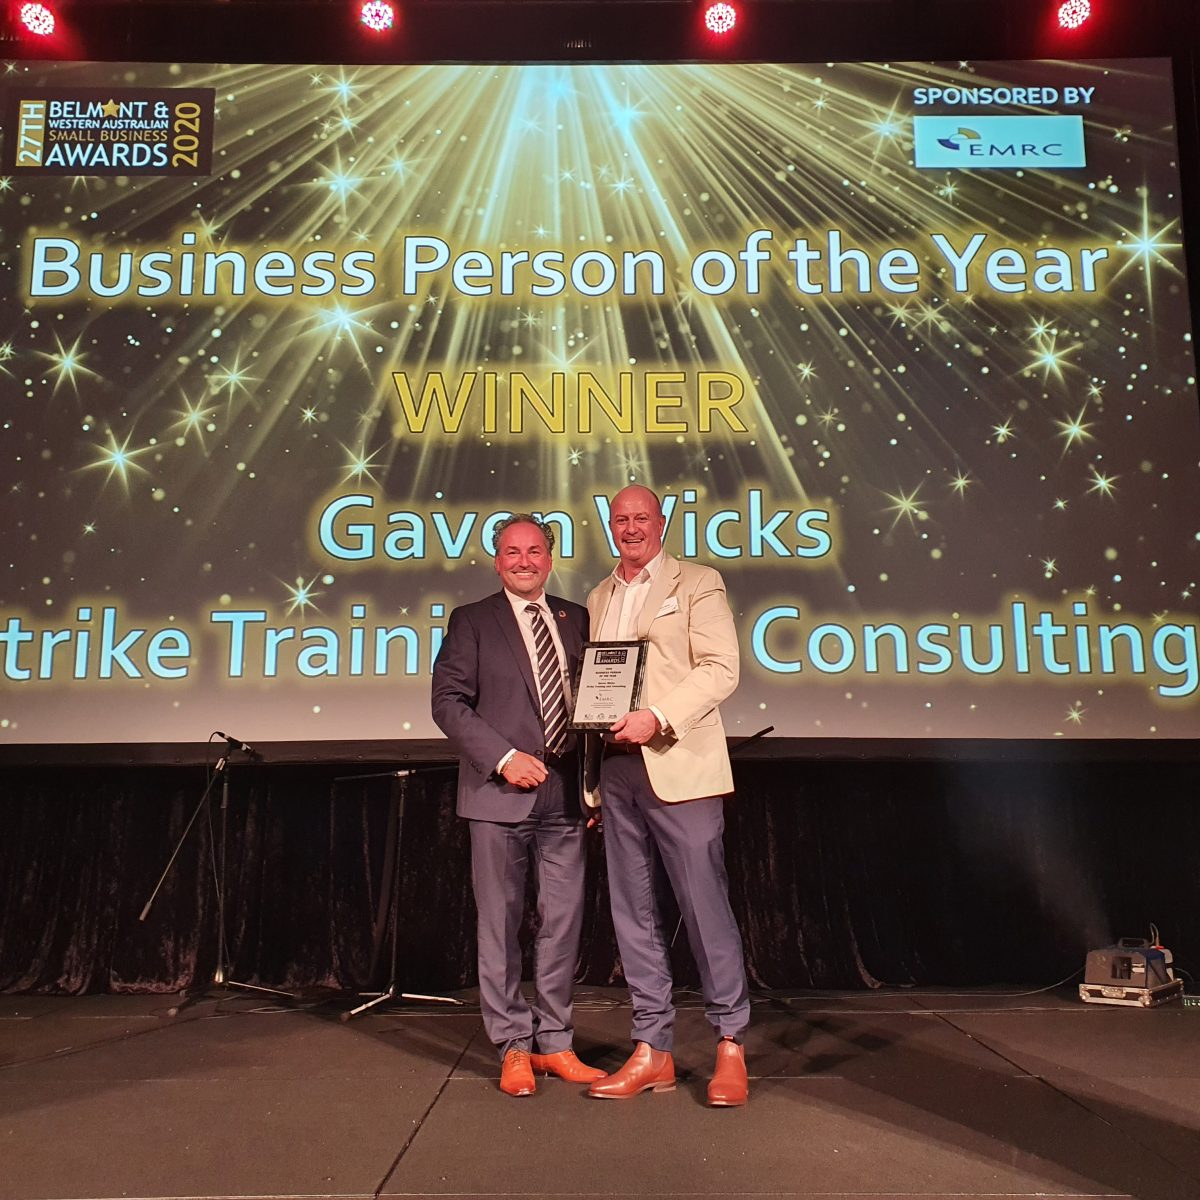 Business Person of the Year!